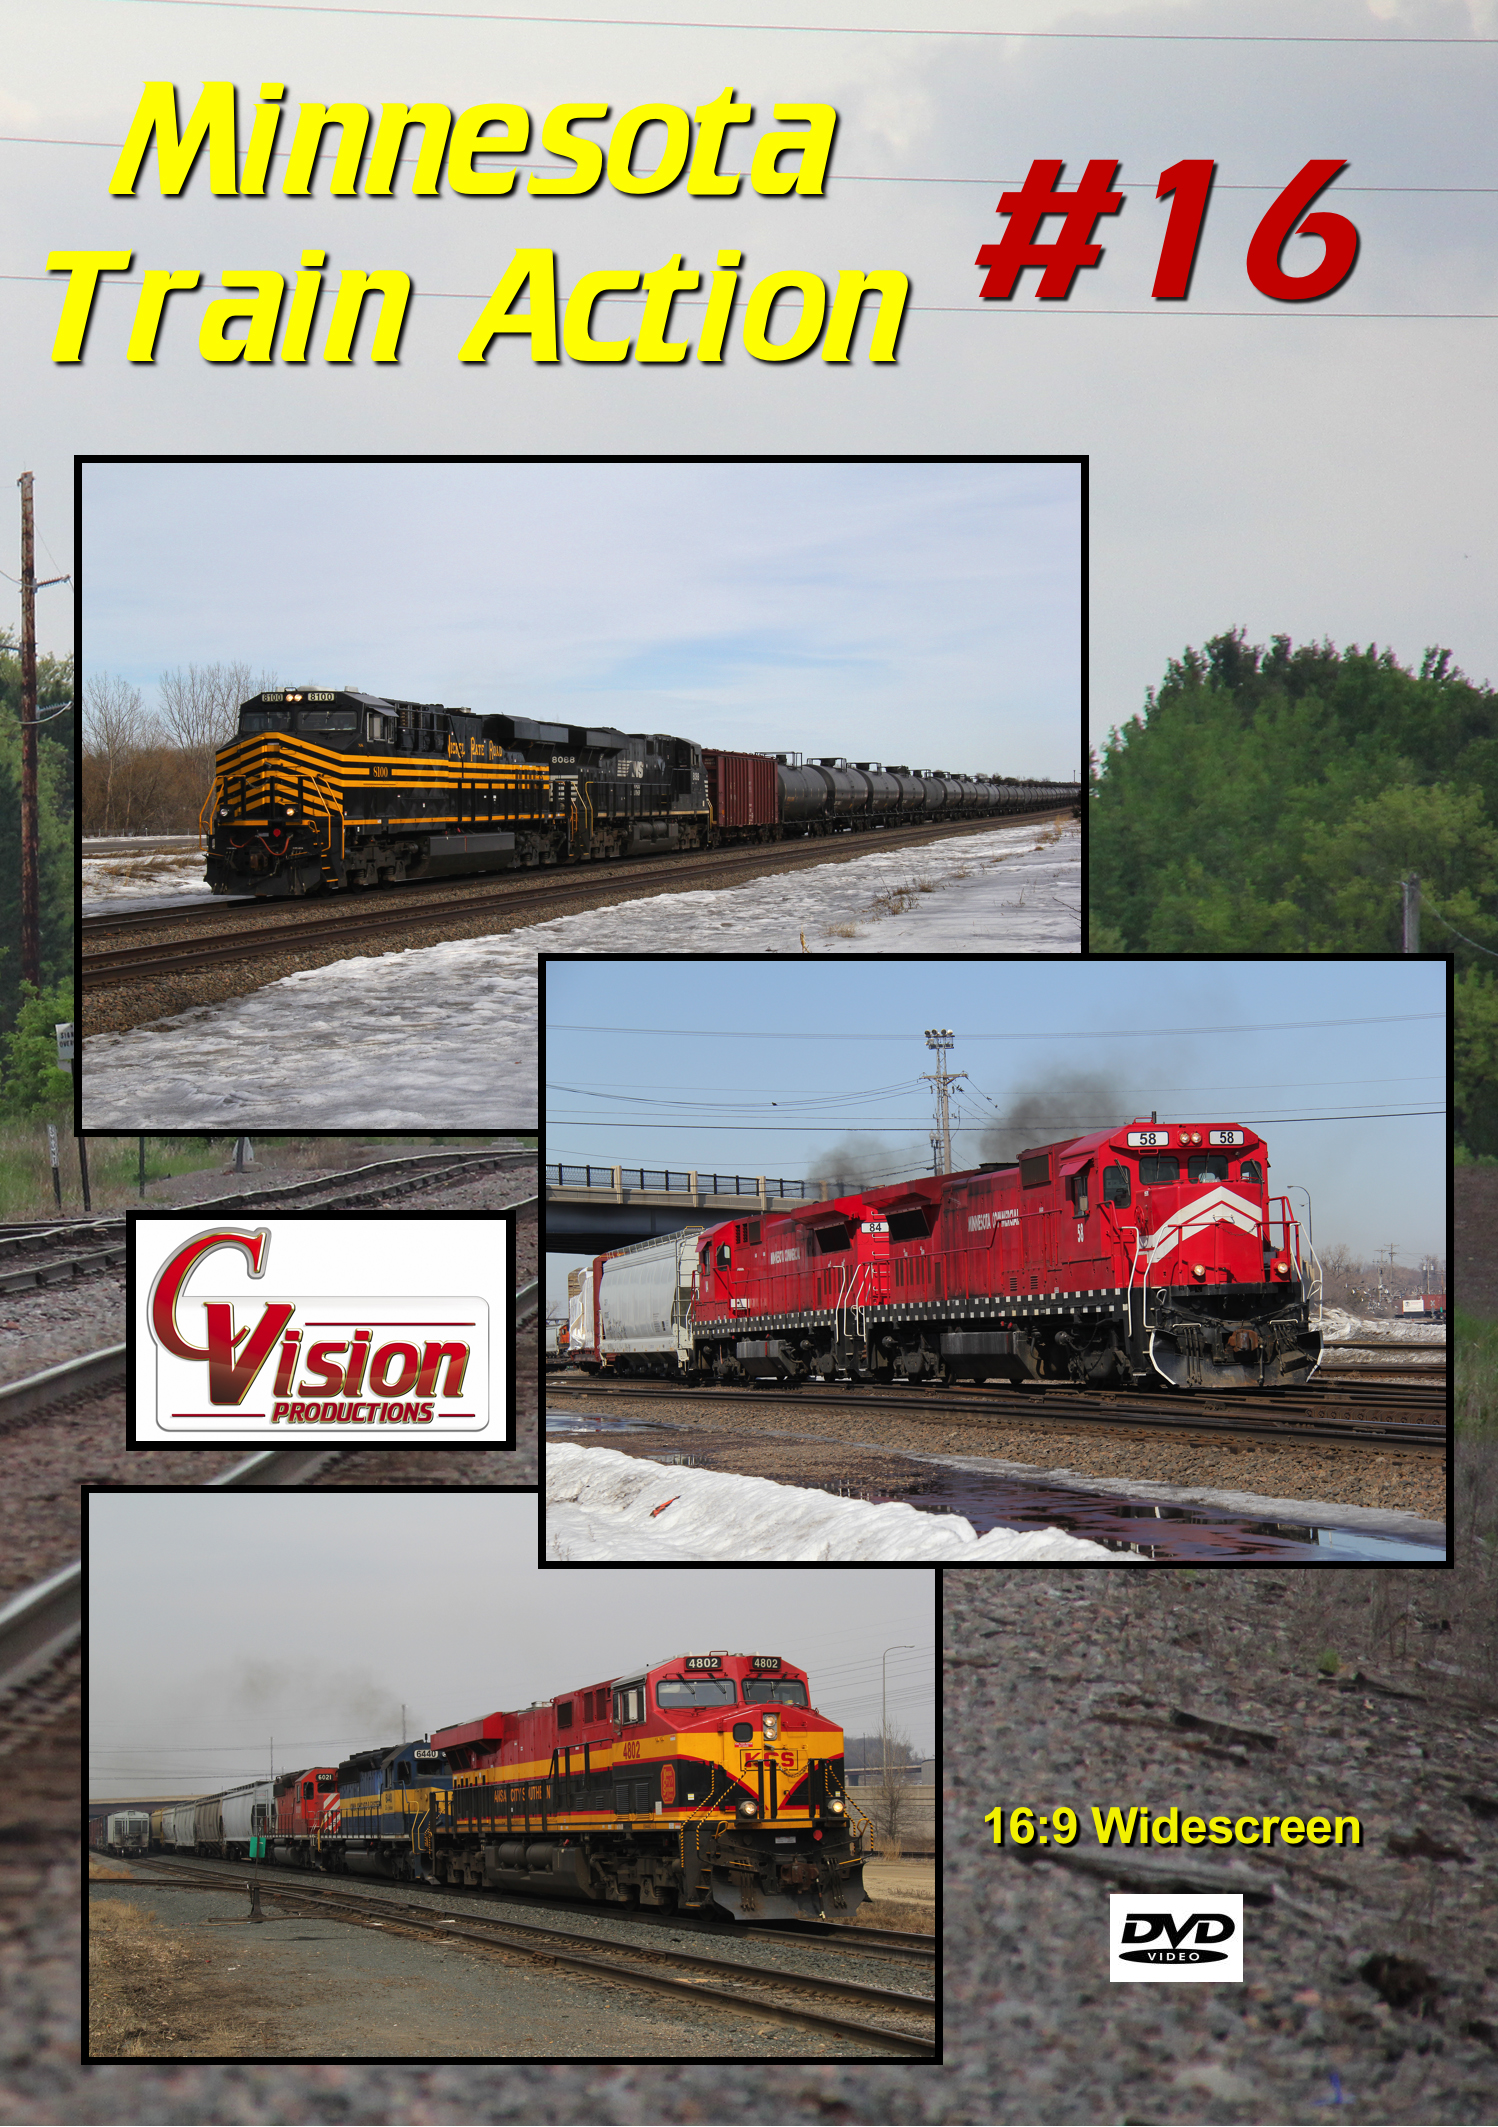 Minnesota Train Action Number 16 DVD C Vision Productions MTA16DVD